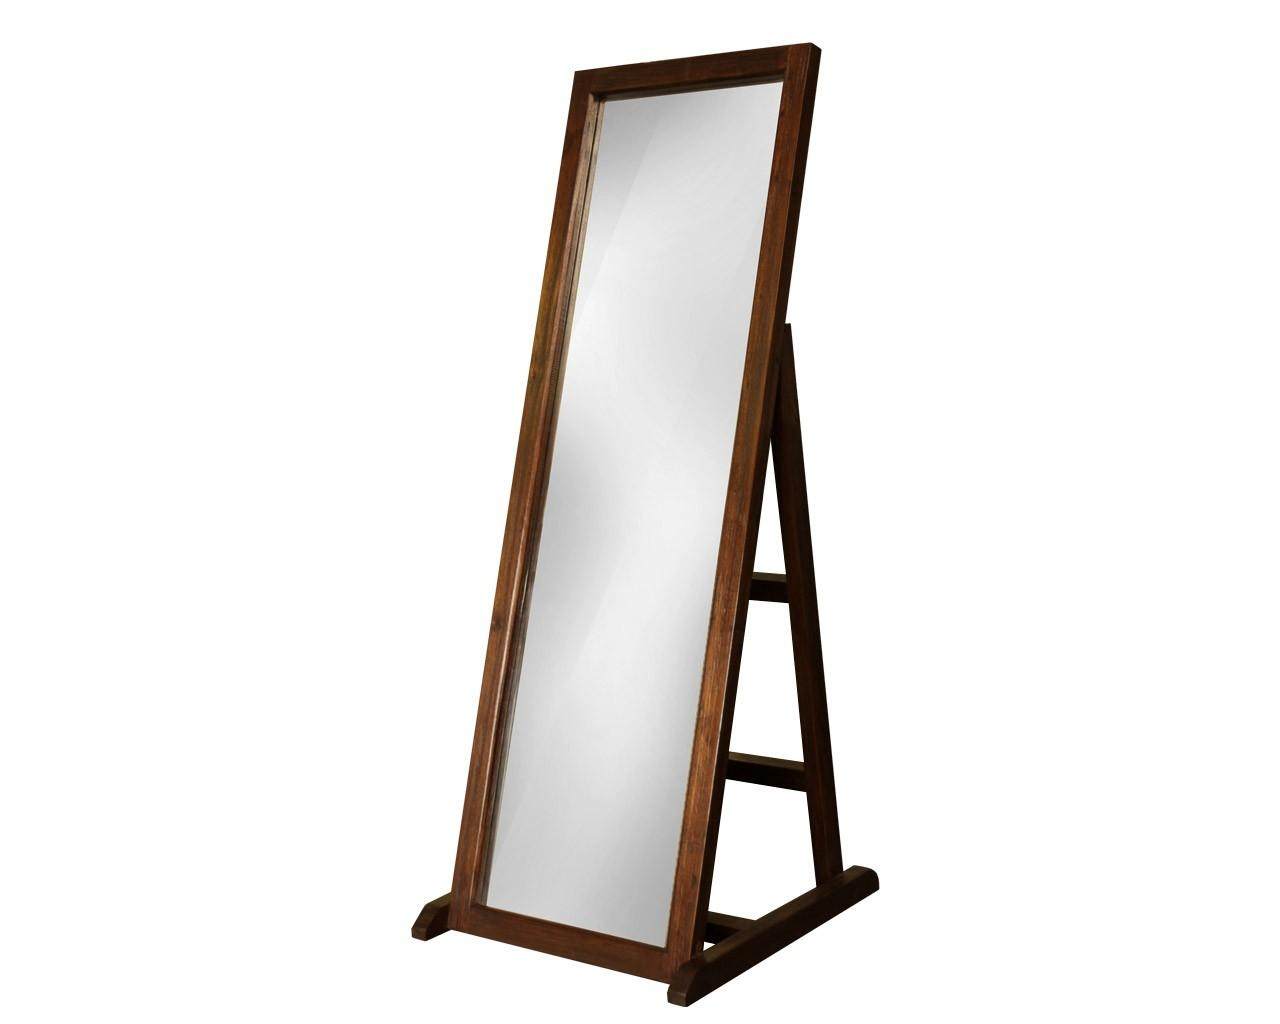 Cheval Mirror Frame – Decorative Cheval Mirrors For Your Home With Modern Cheval Mirror (Image 8 of 20)